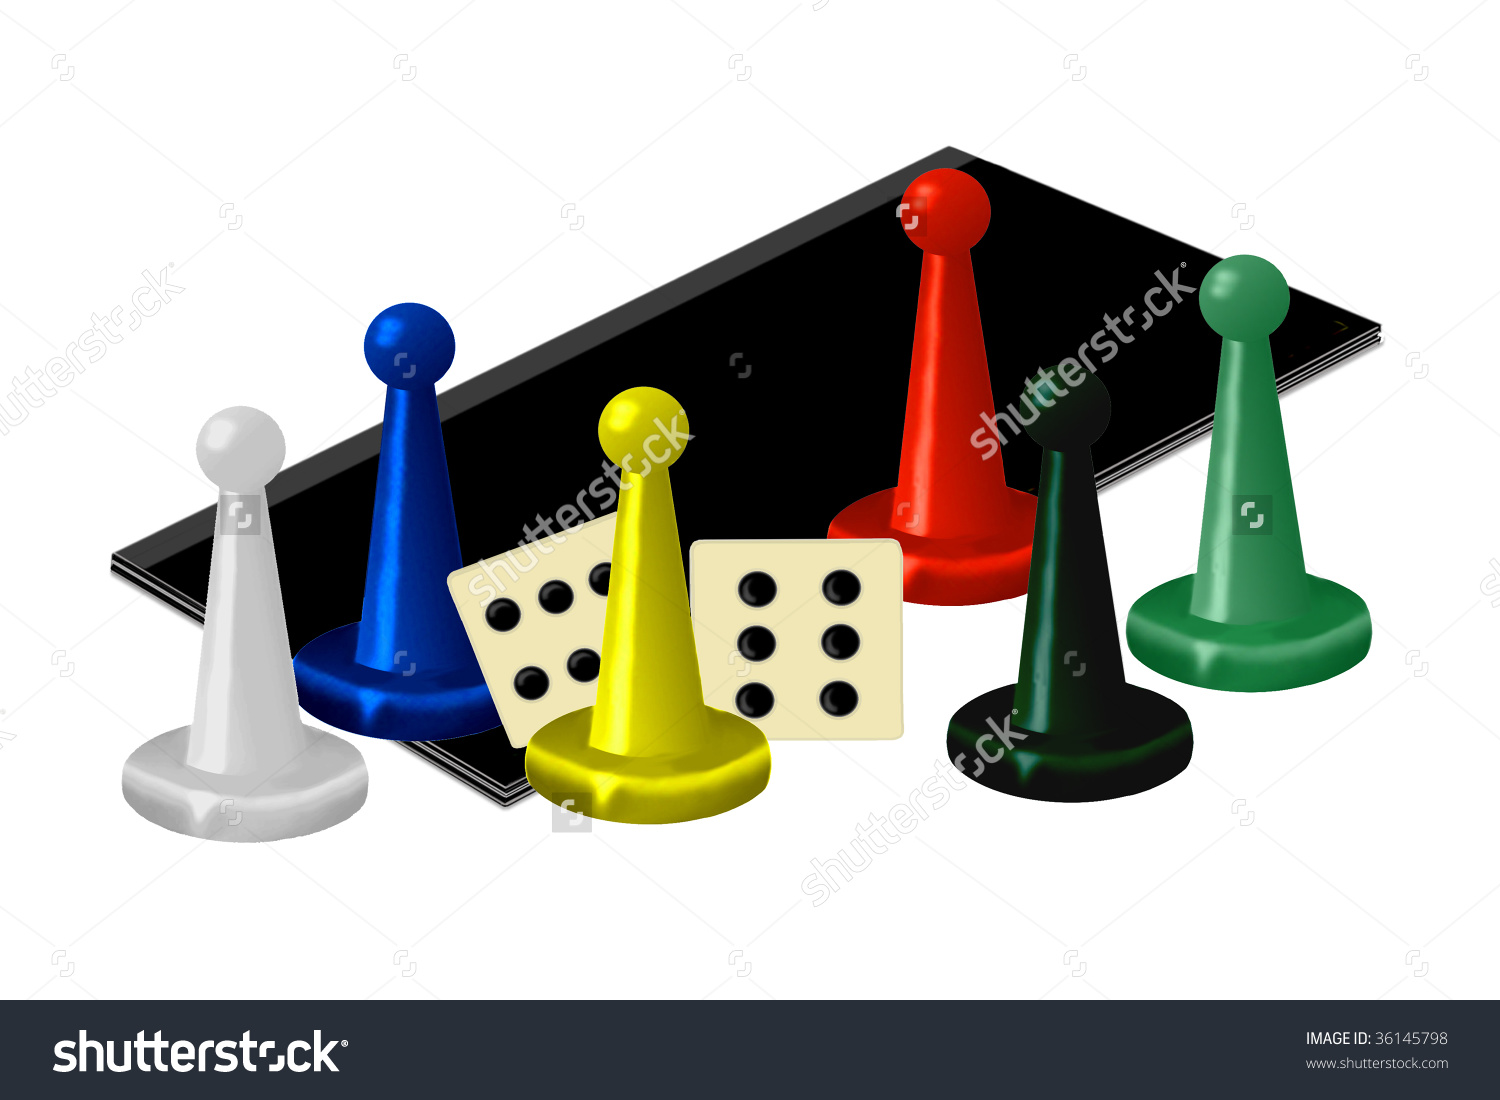 Family Game Night - Clipart of a game bo-Family Game Night - Clipart of a game board, dice and brightly colored game pieces-17